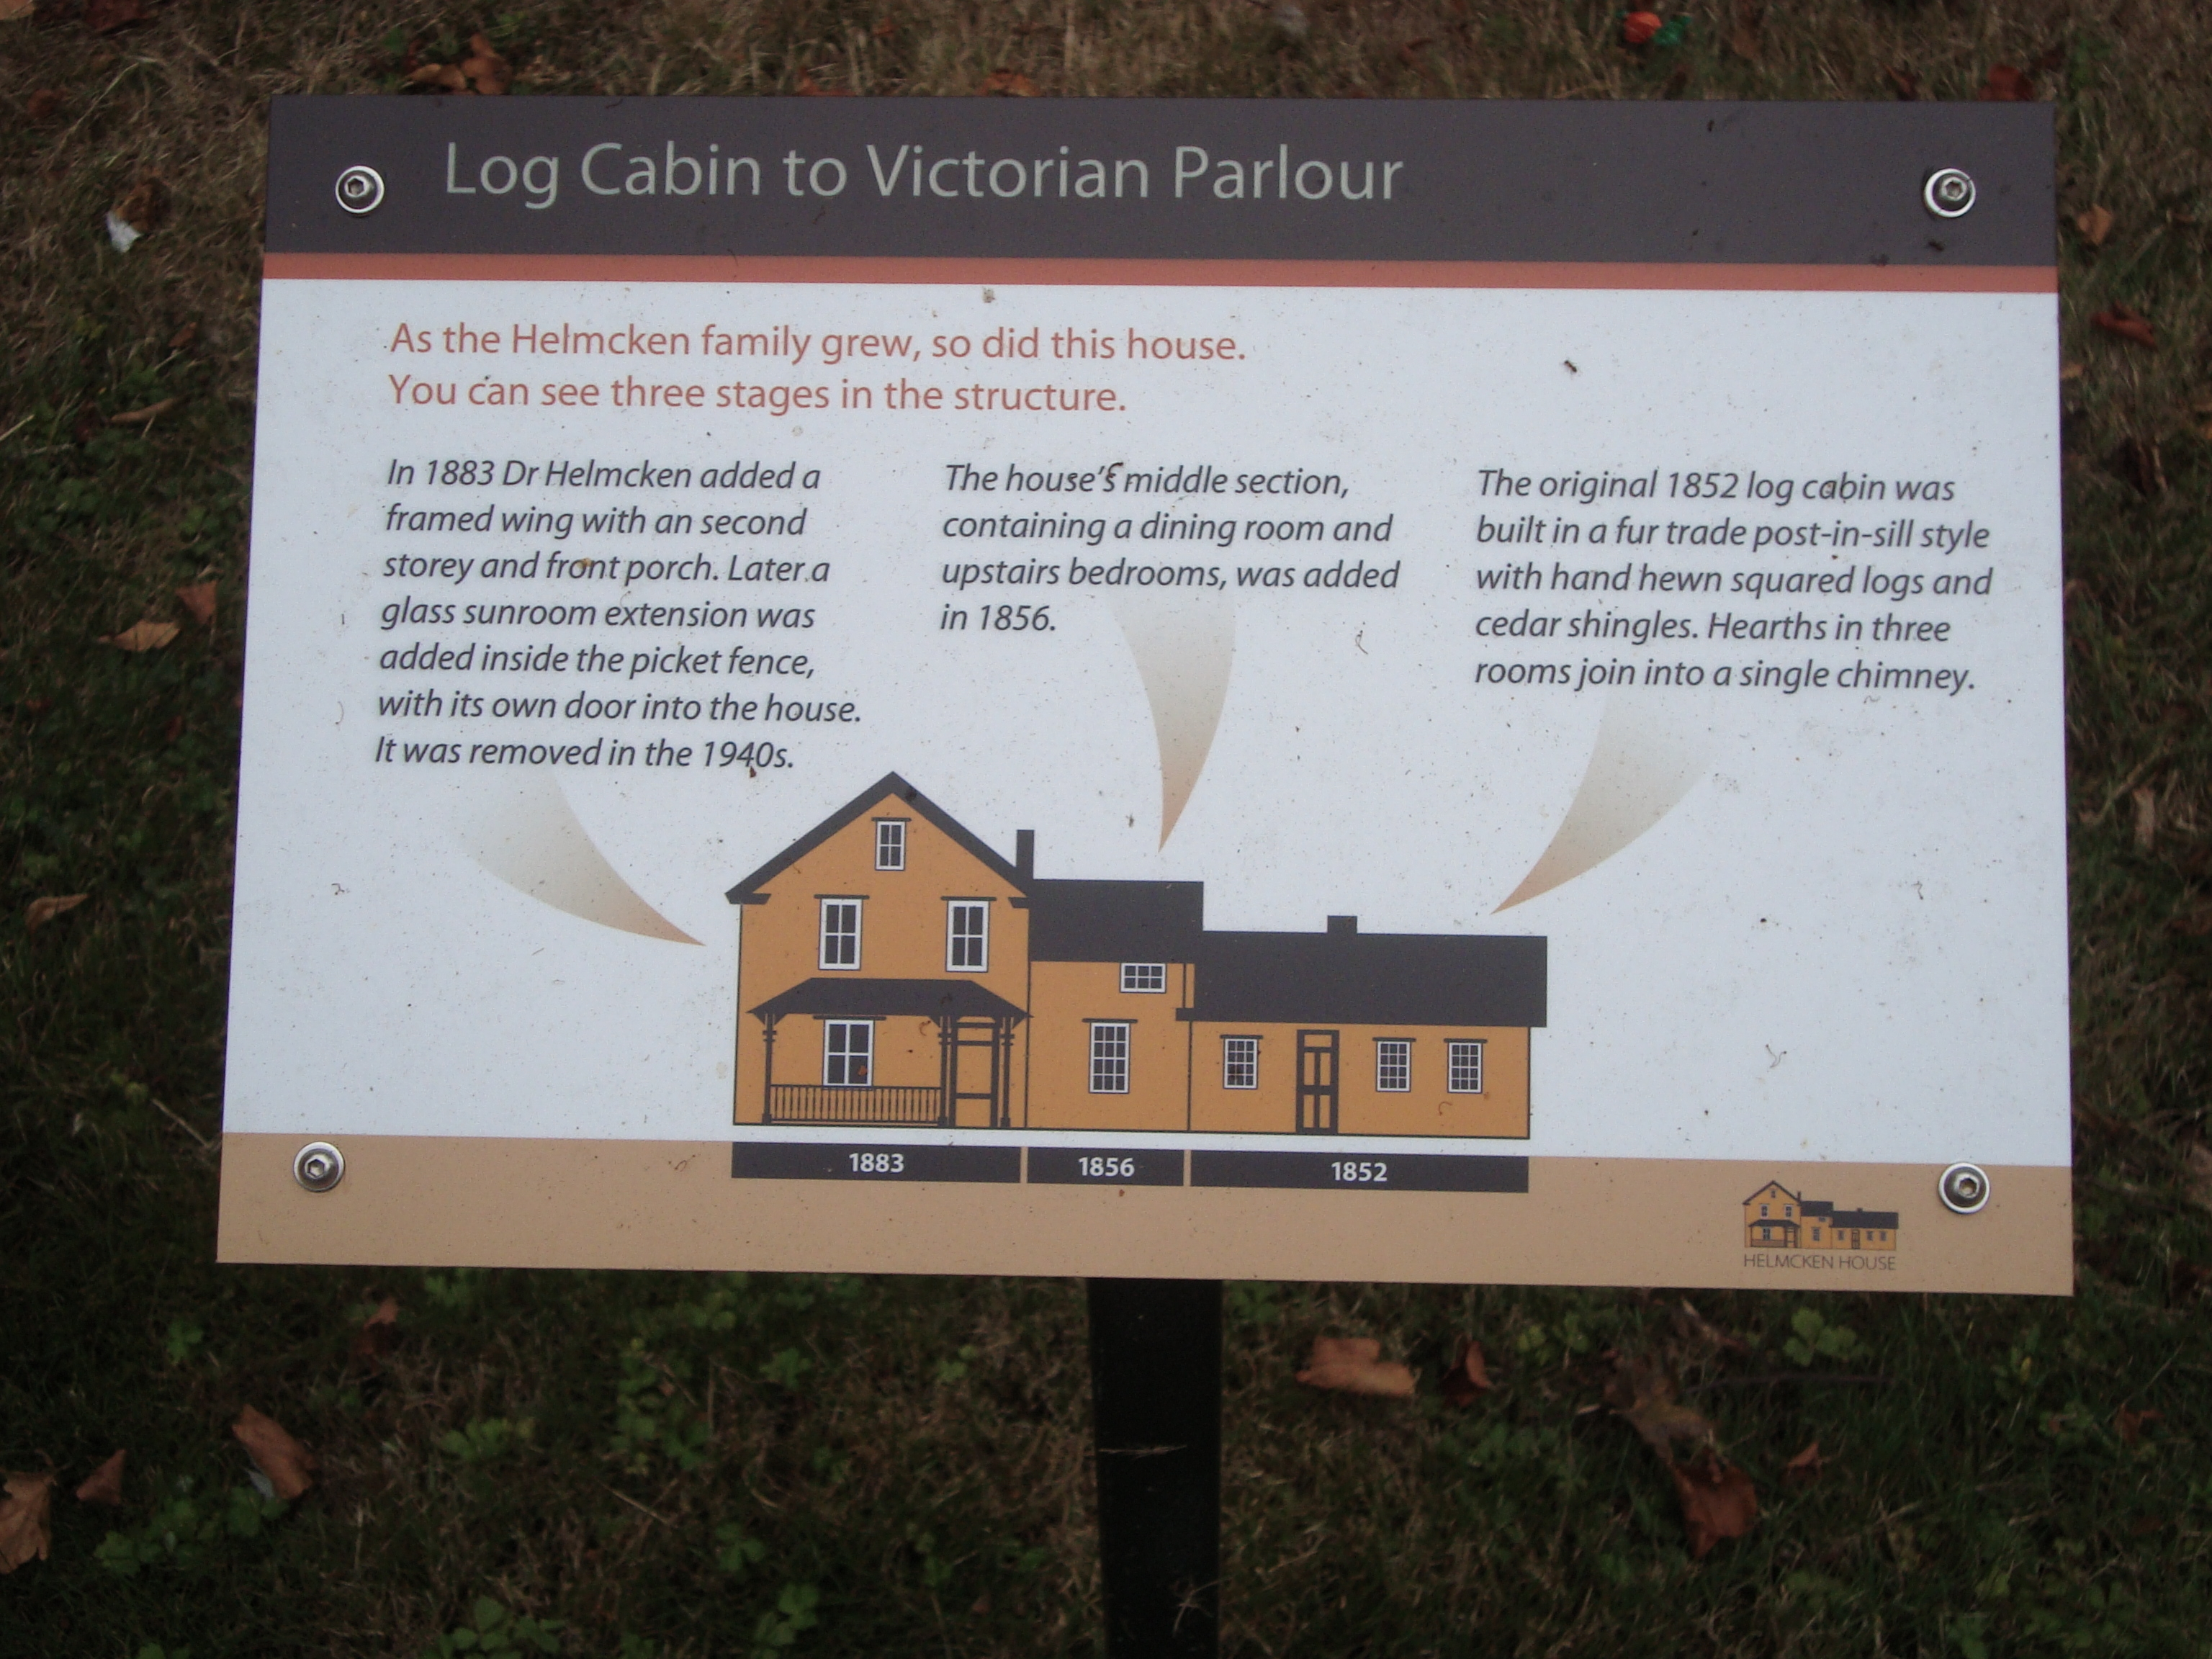 Log Cabin to Victorian Parlour Marker